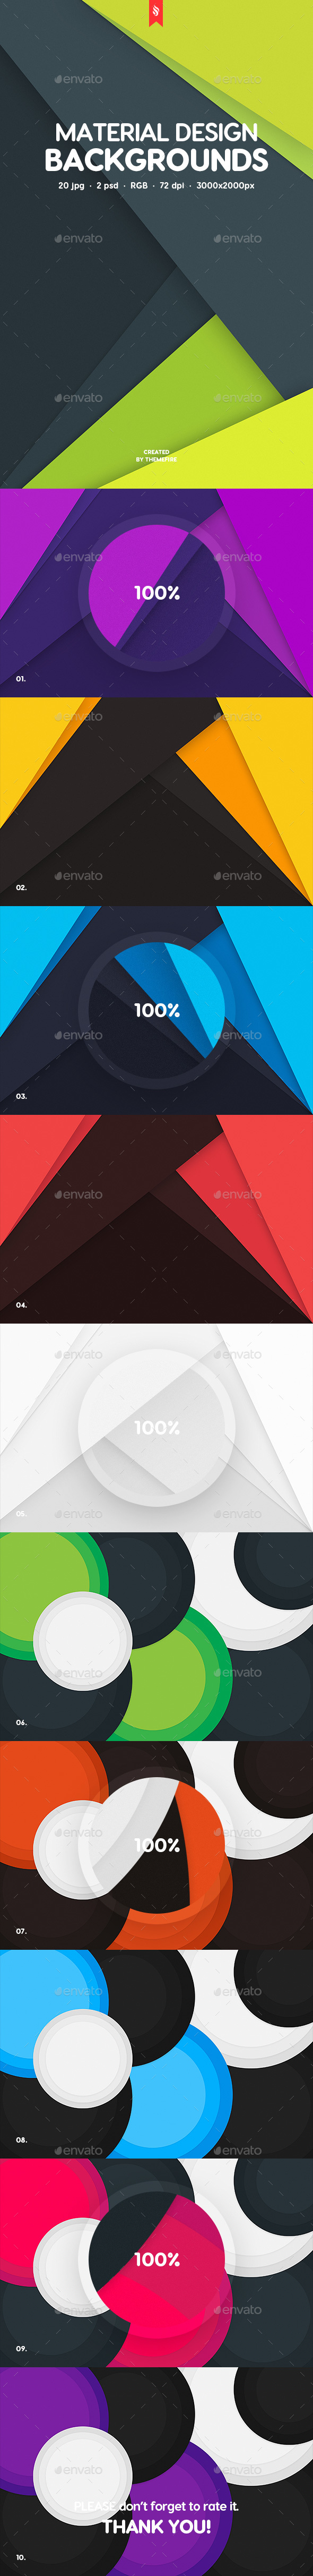 20 Material Design Backgrounds - Abstract Backgrounds